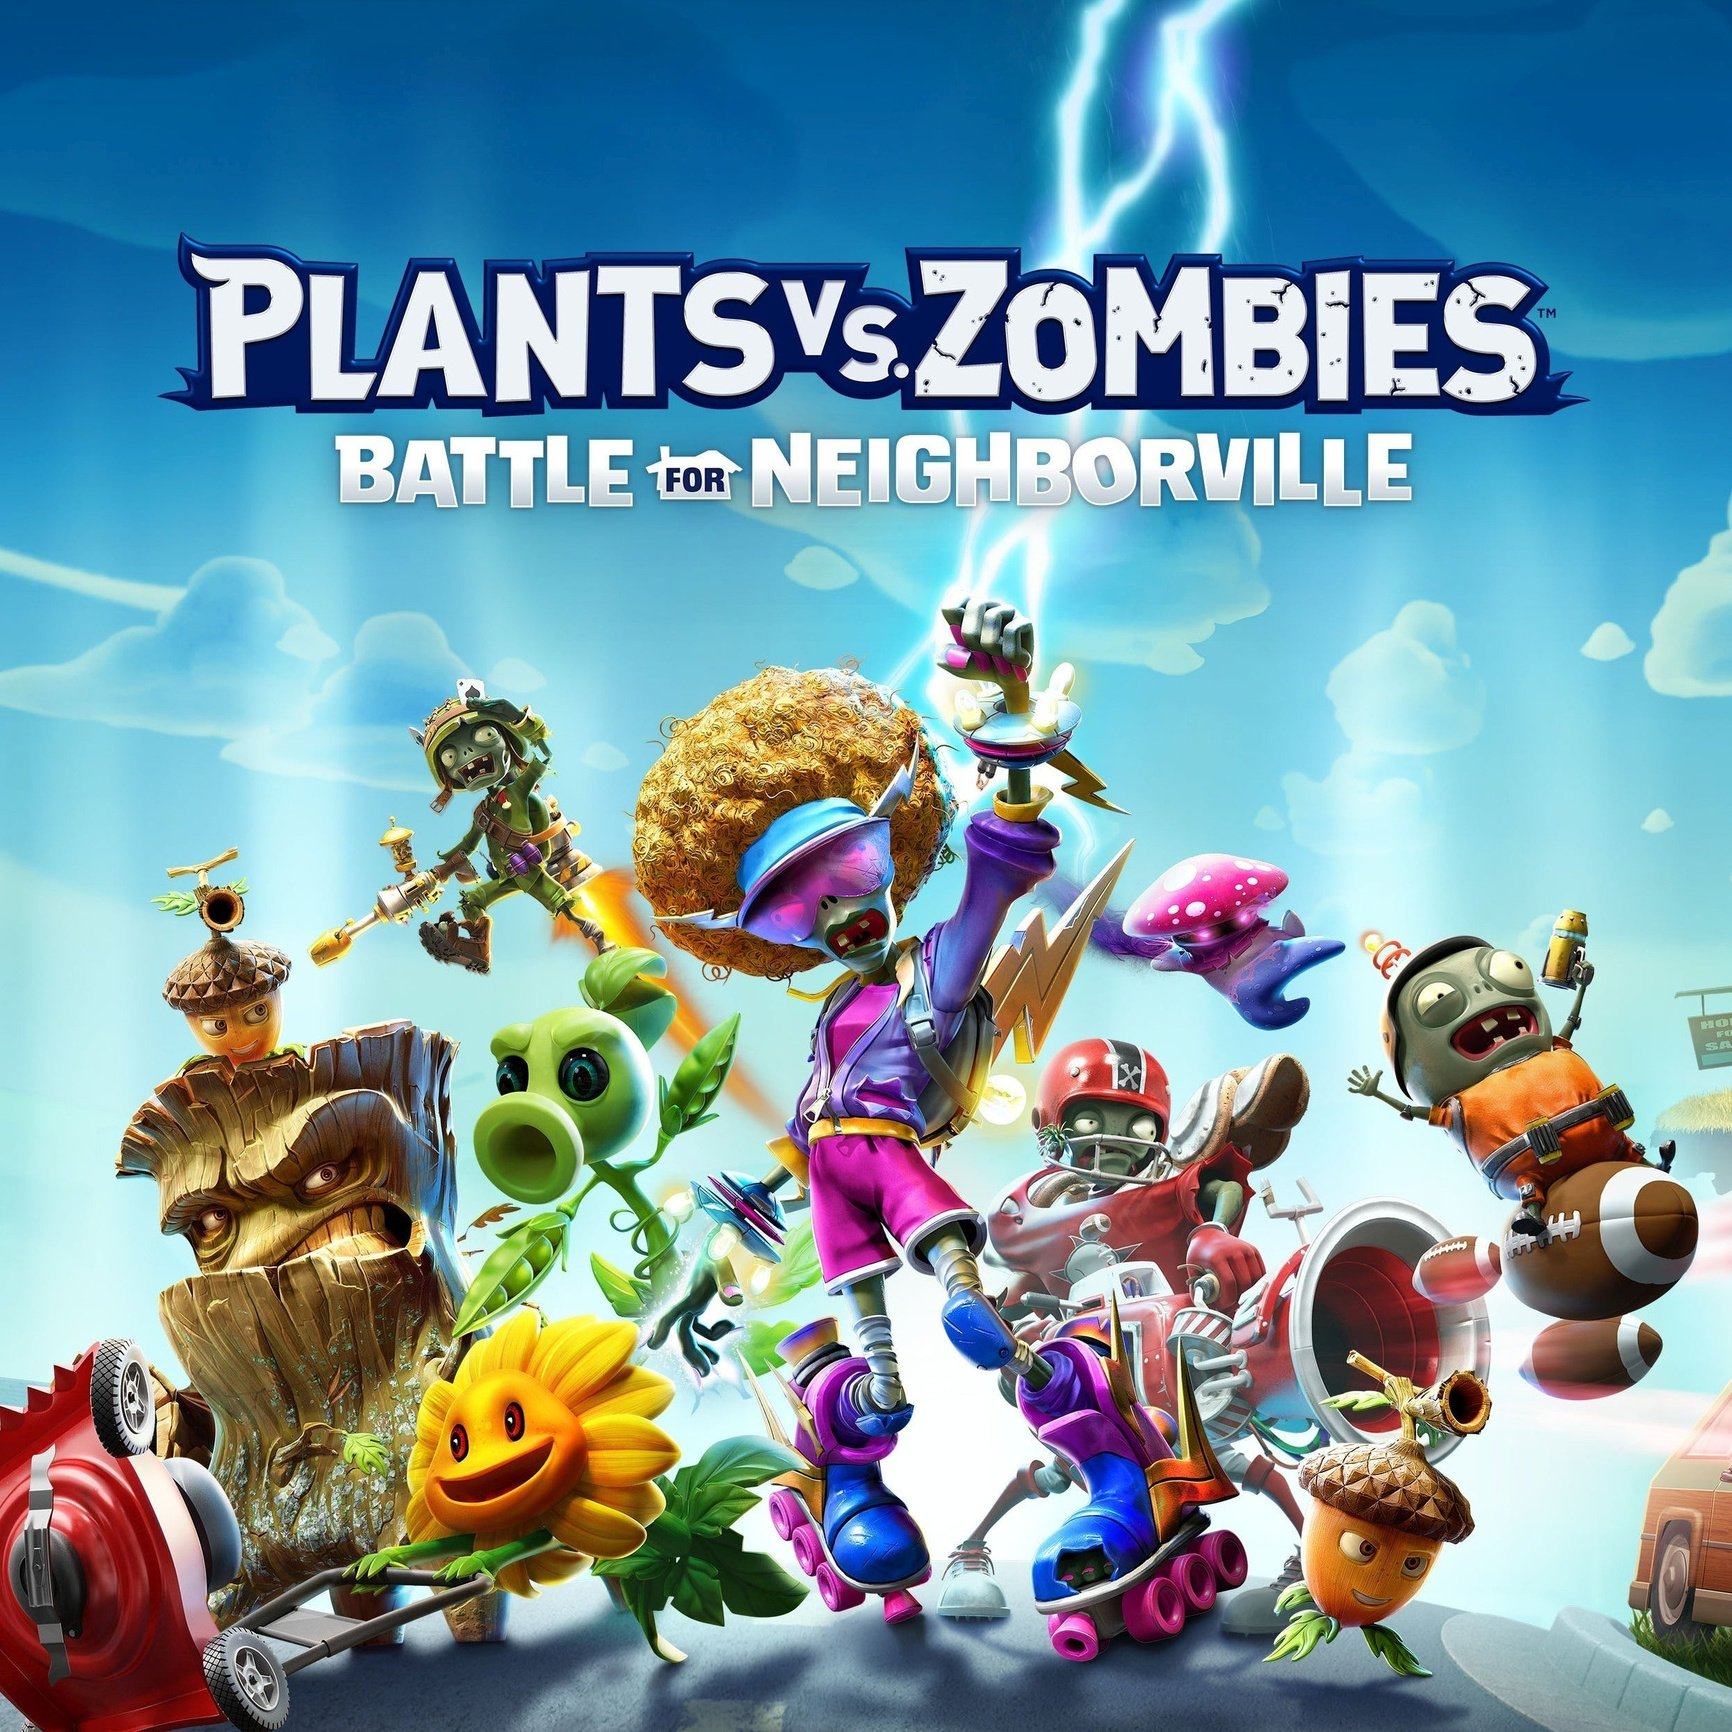 plants-vs-zombies-welcome-to-neighborville---button-01-1567619129584.jpg